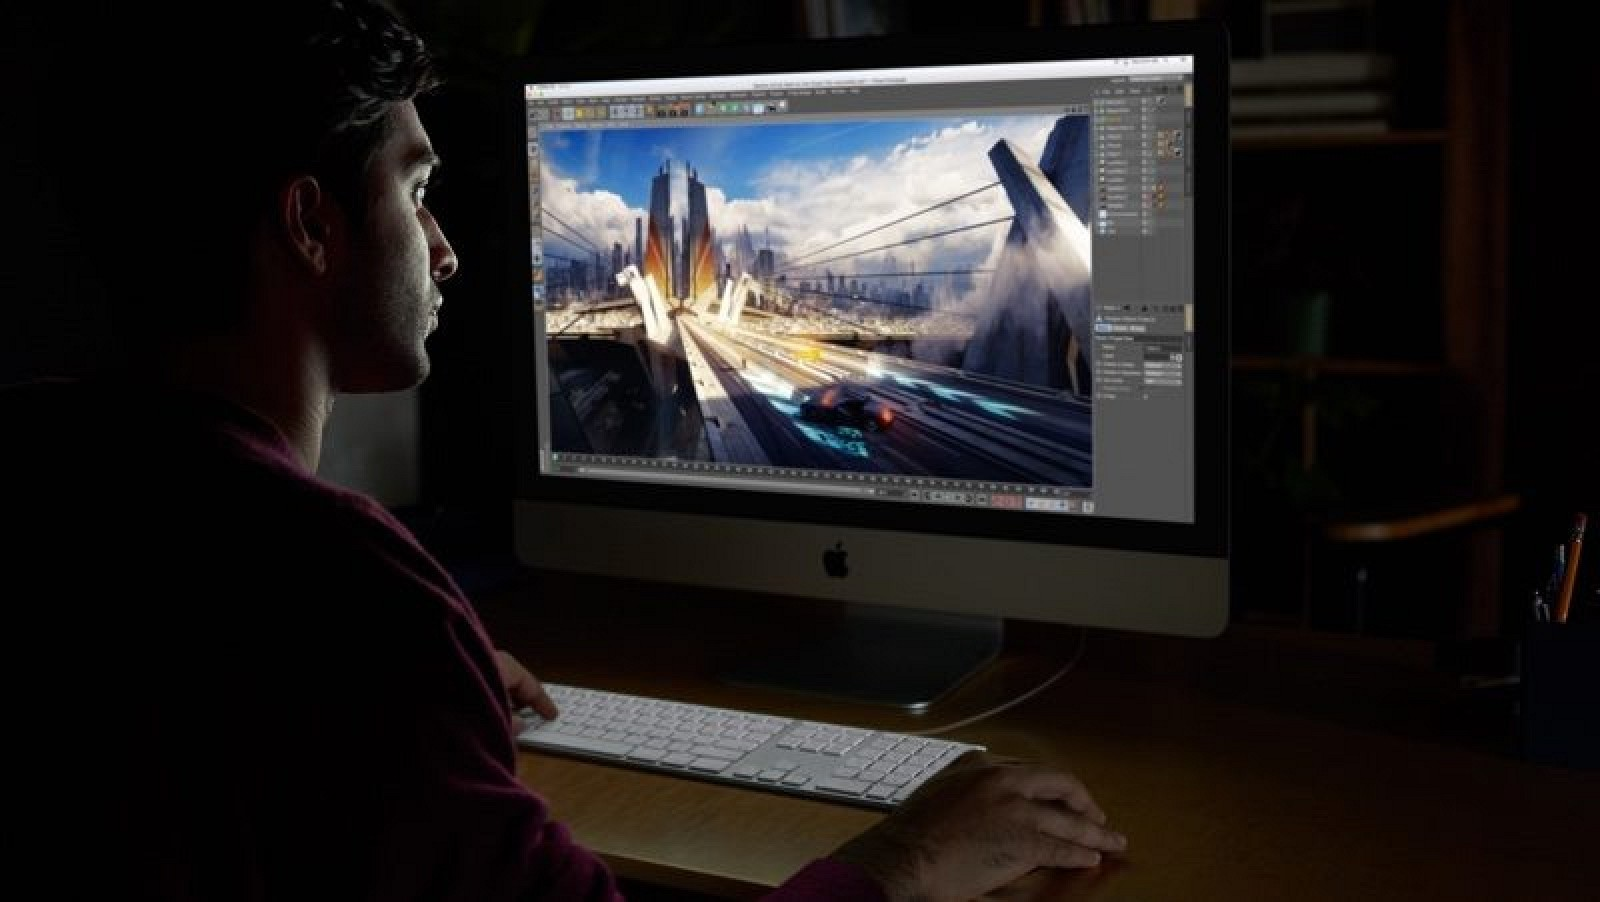 IMac, pro, the most powerful, mac ever, arrives this., apple Buy, mac Pro, apple Buy, macBook Pro, apple